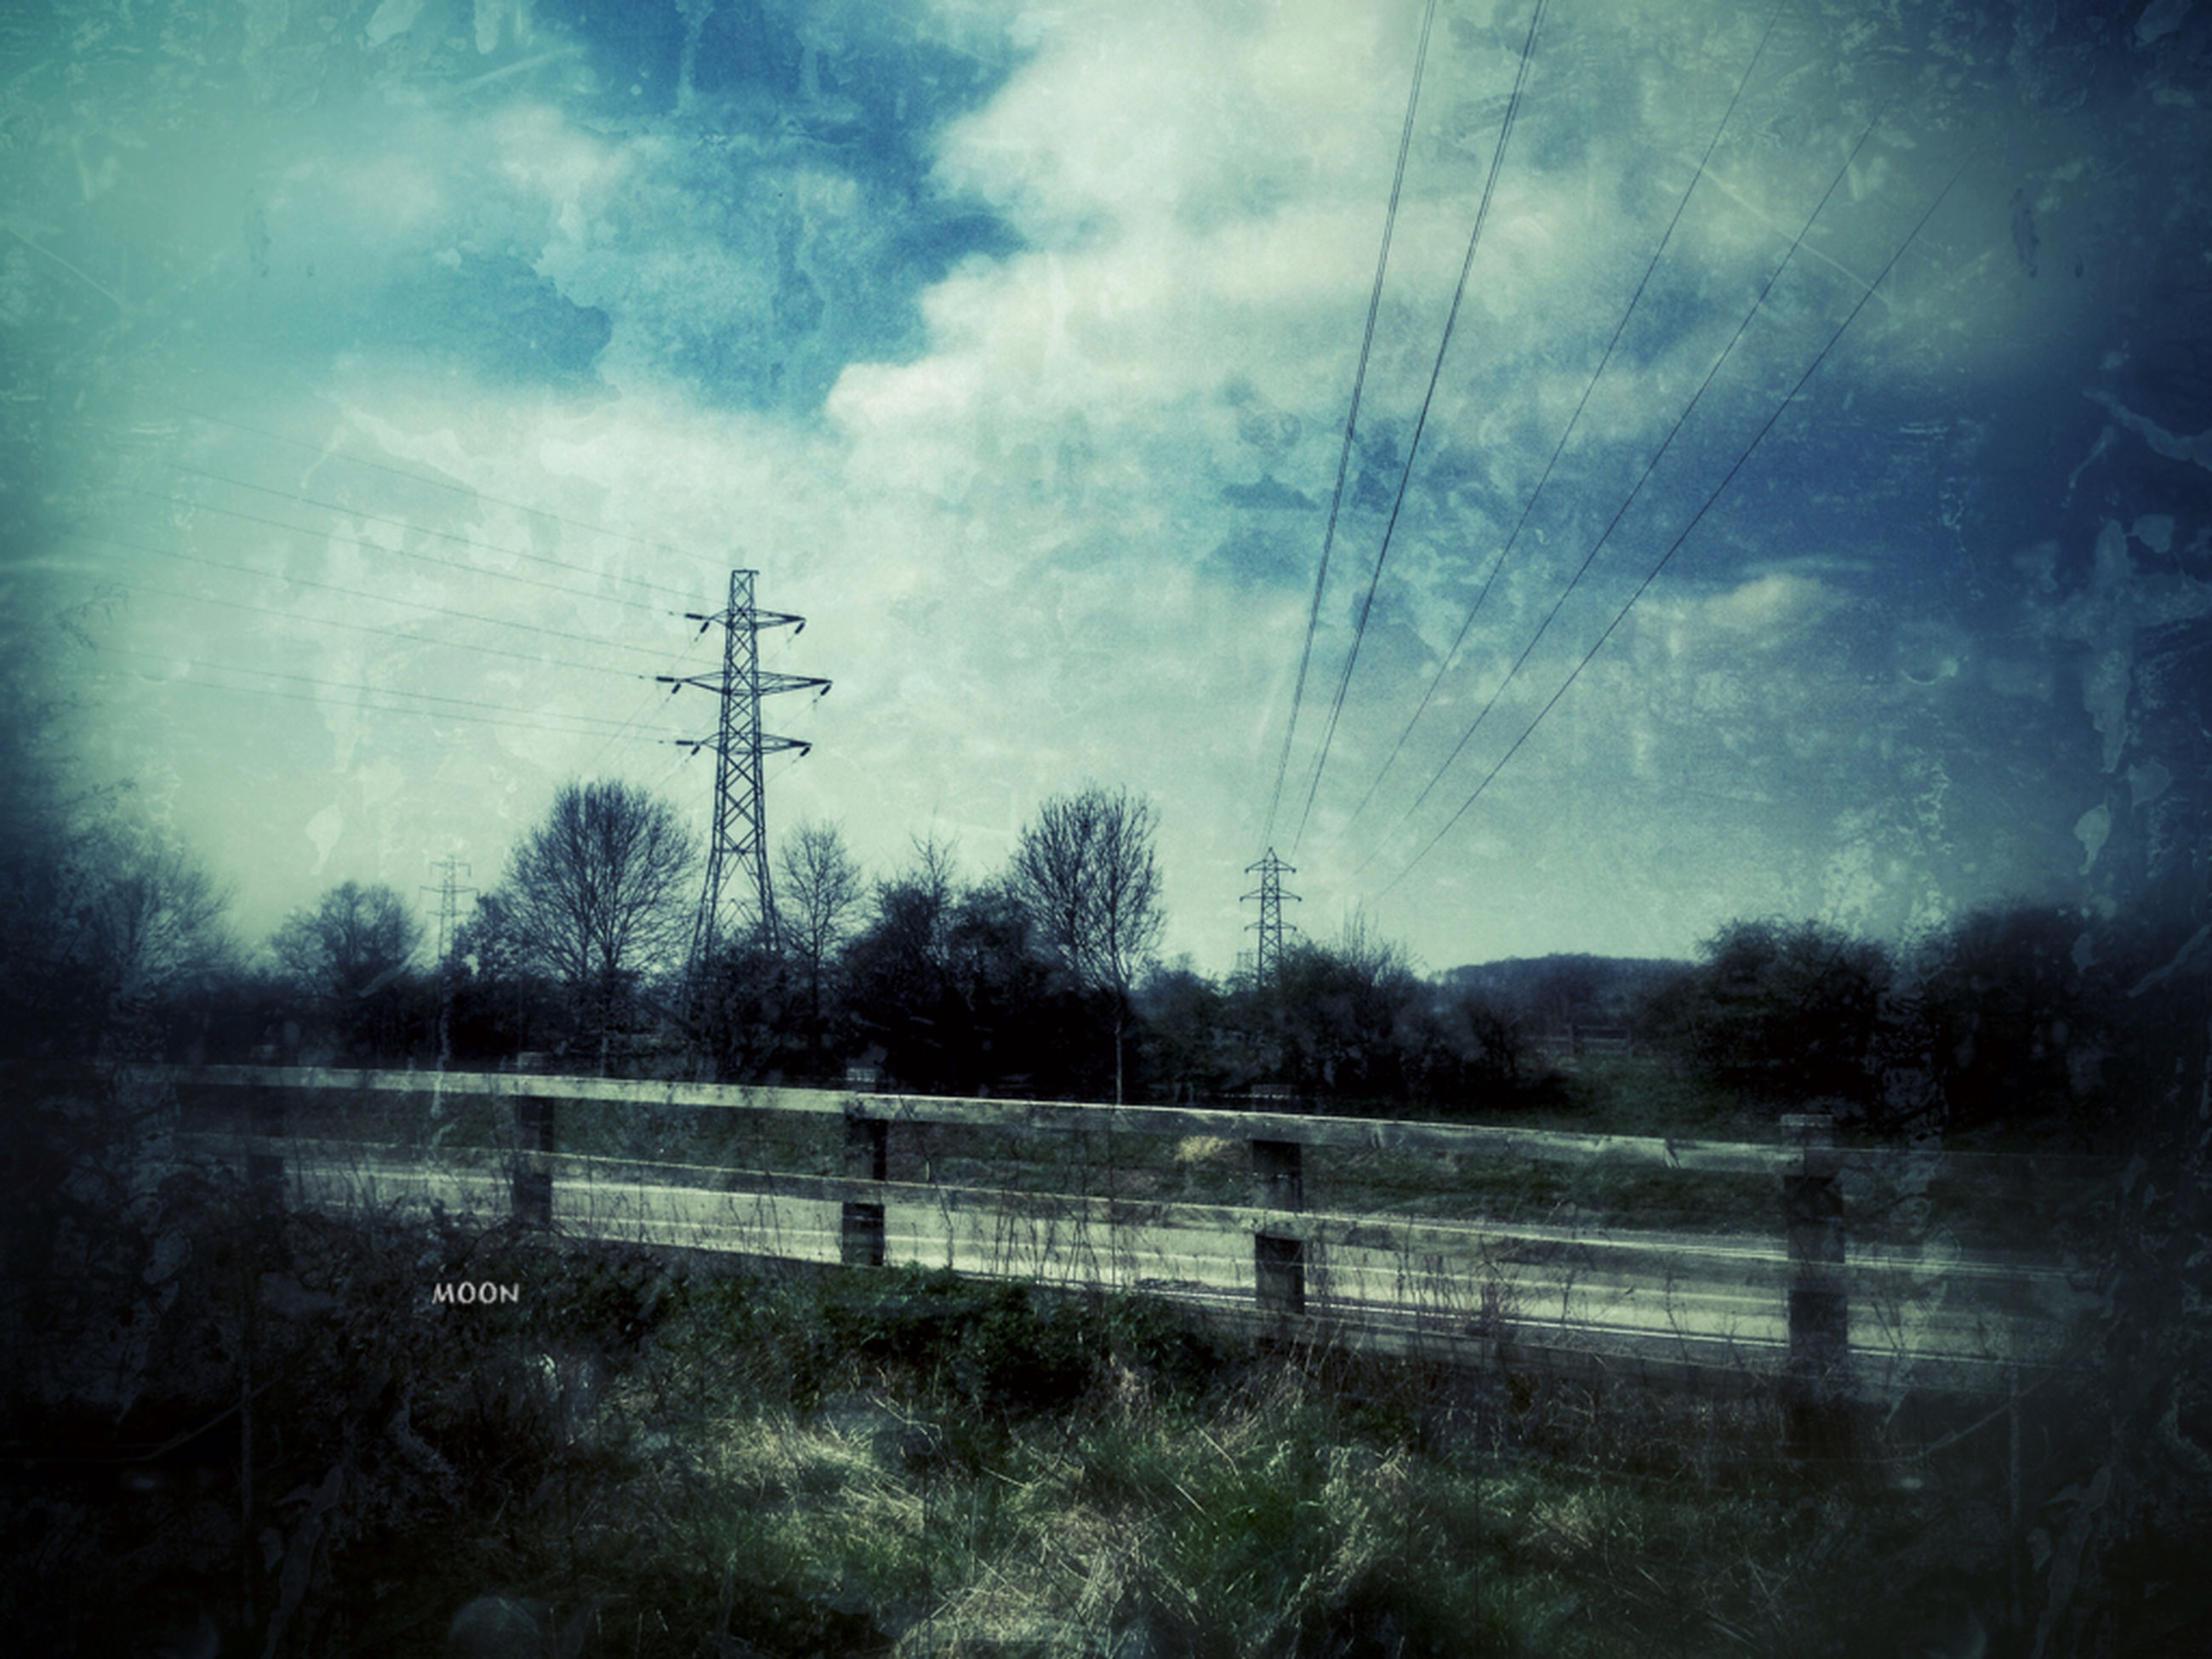 electricity pylon, power line, sky, electricity, tree, field, landscape, fuel and power generation, power supply, tranquility, tranquil scene, cloud - sky, connection, nature, cable, scenics, technology, rural scene, beauty in nature, cloudy